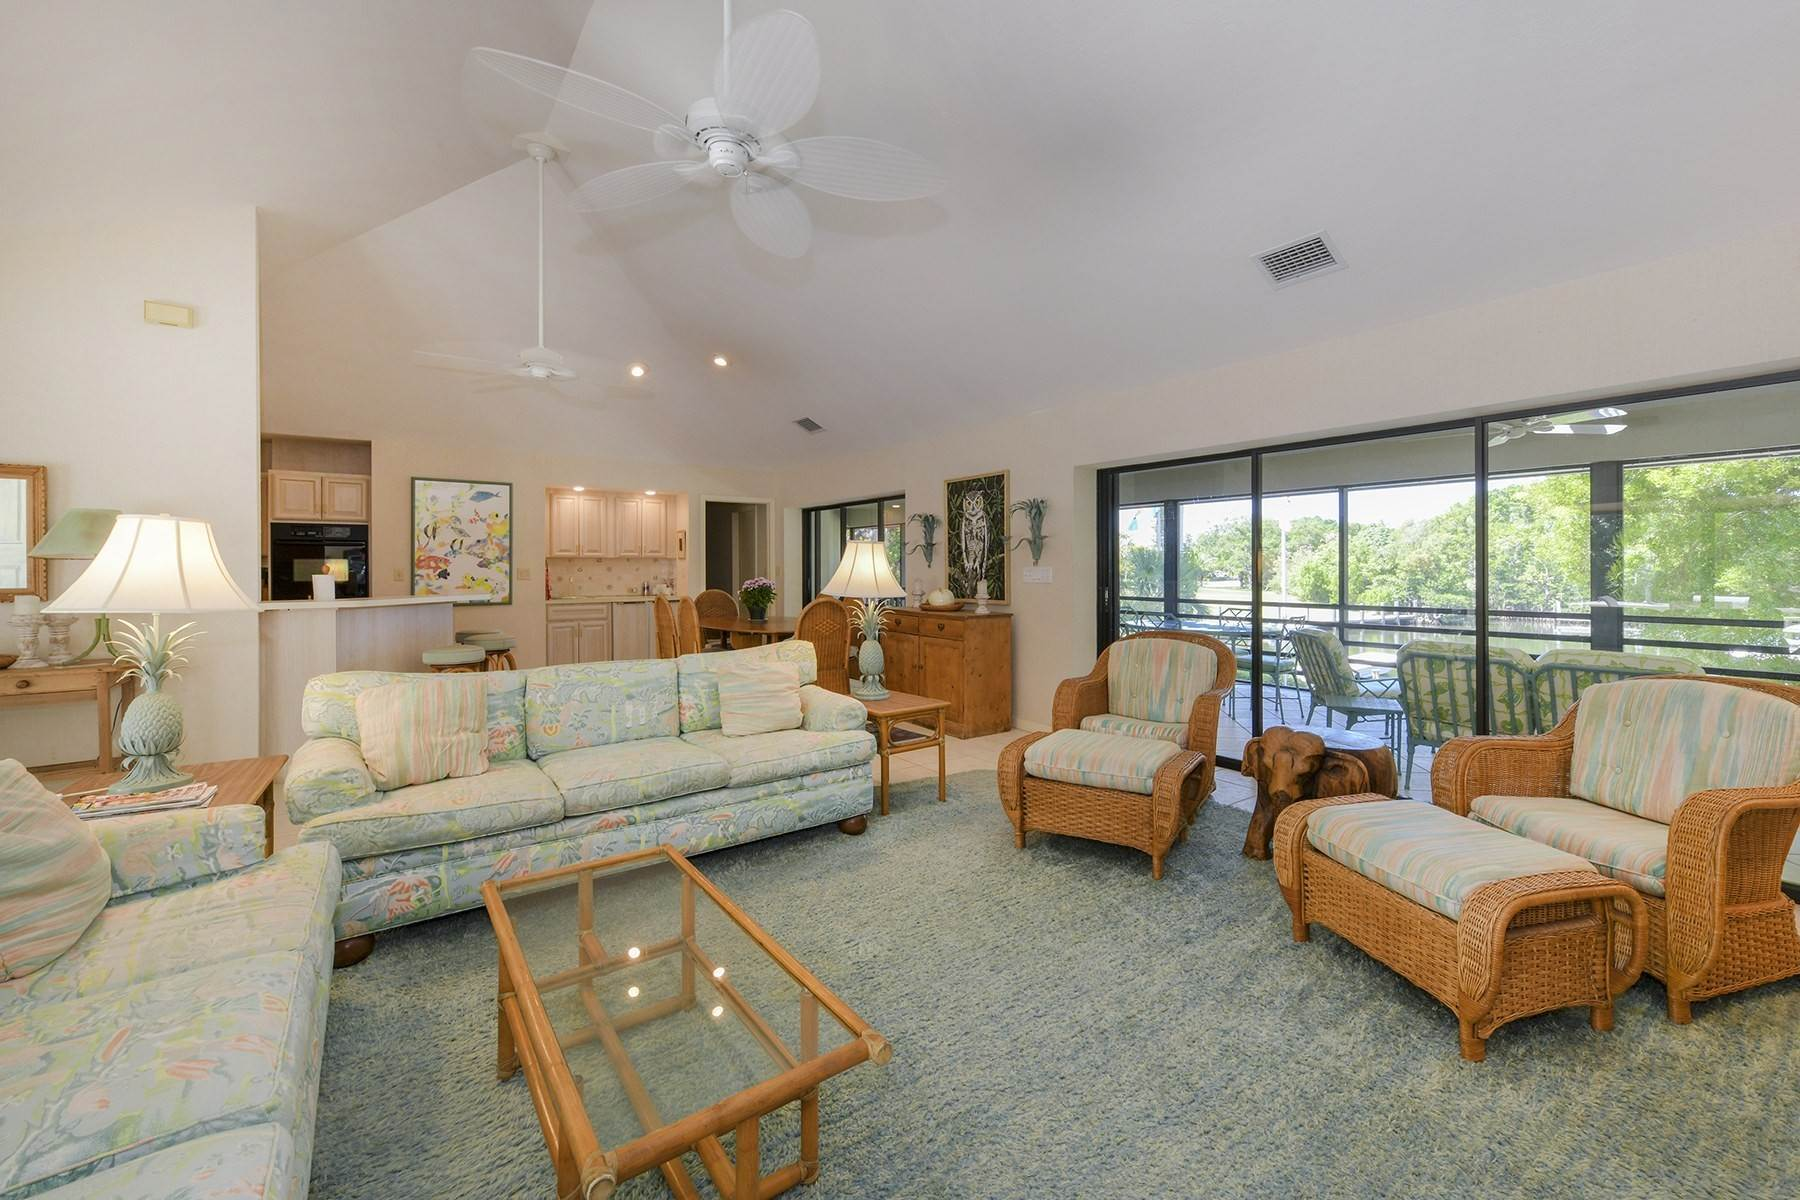 39. Property for Sale at 10 Cannon Point, Key Largo, FL Key Largo, Florida 33037 United States